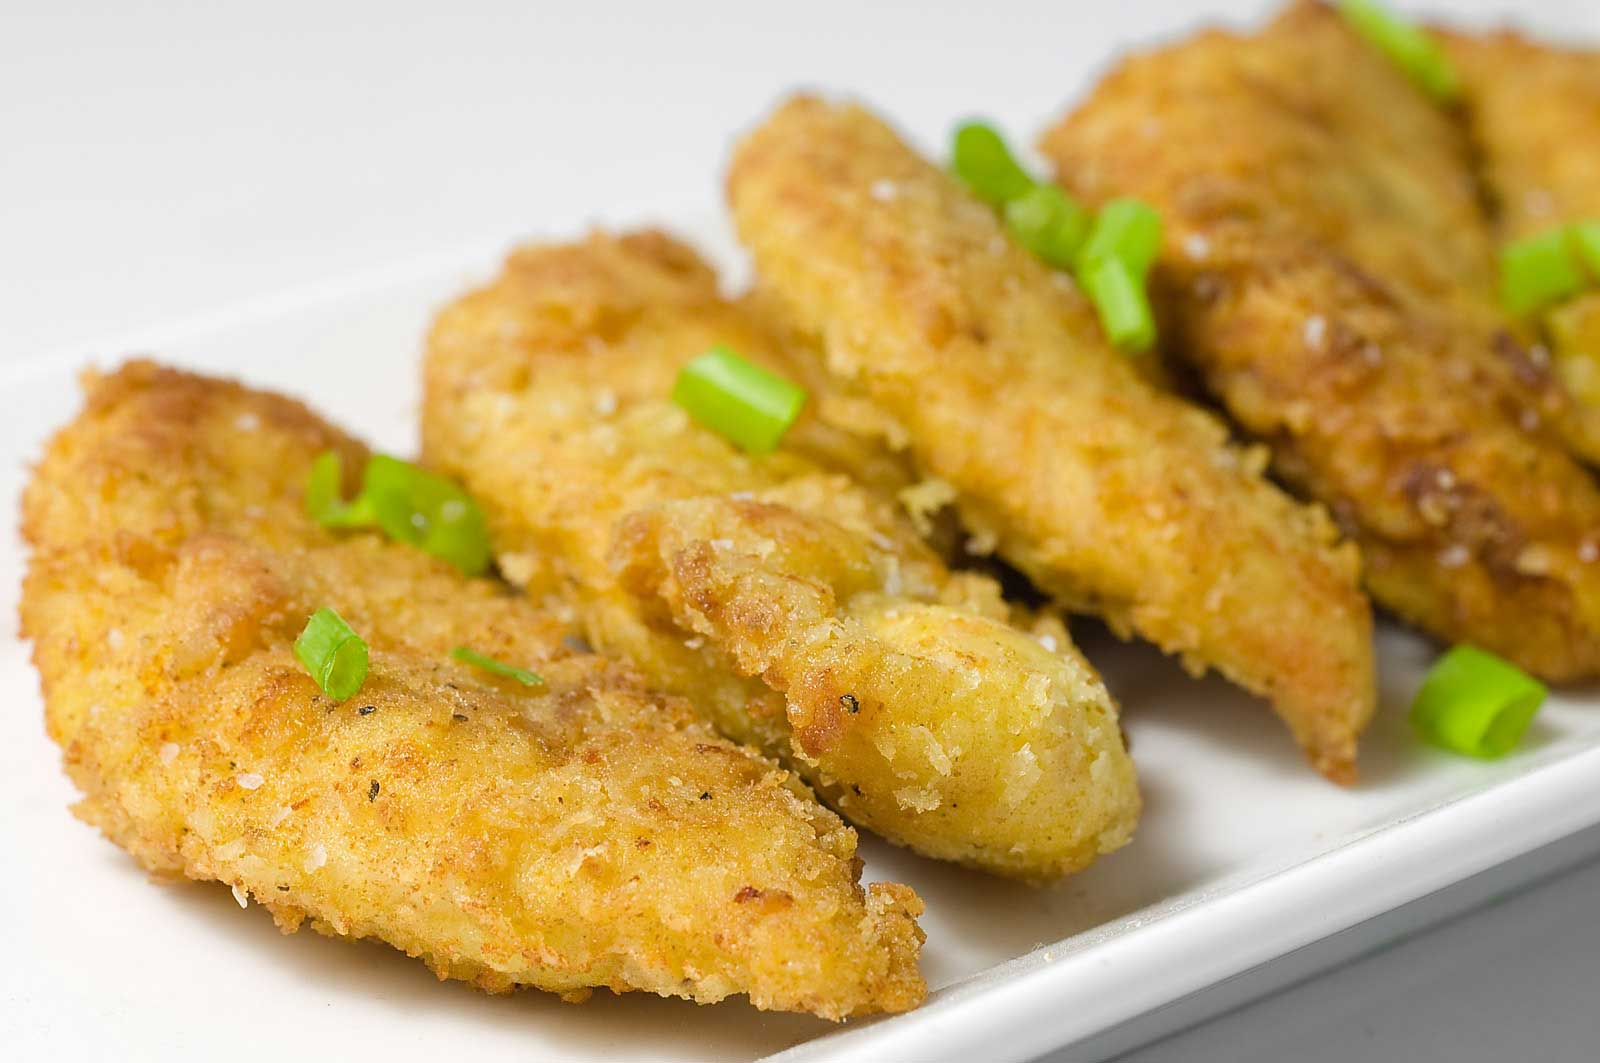 Recipe for Curried Chicken Tenders at Life's Ambrosia